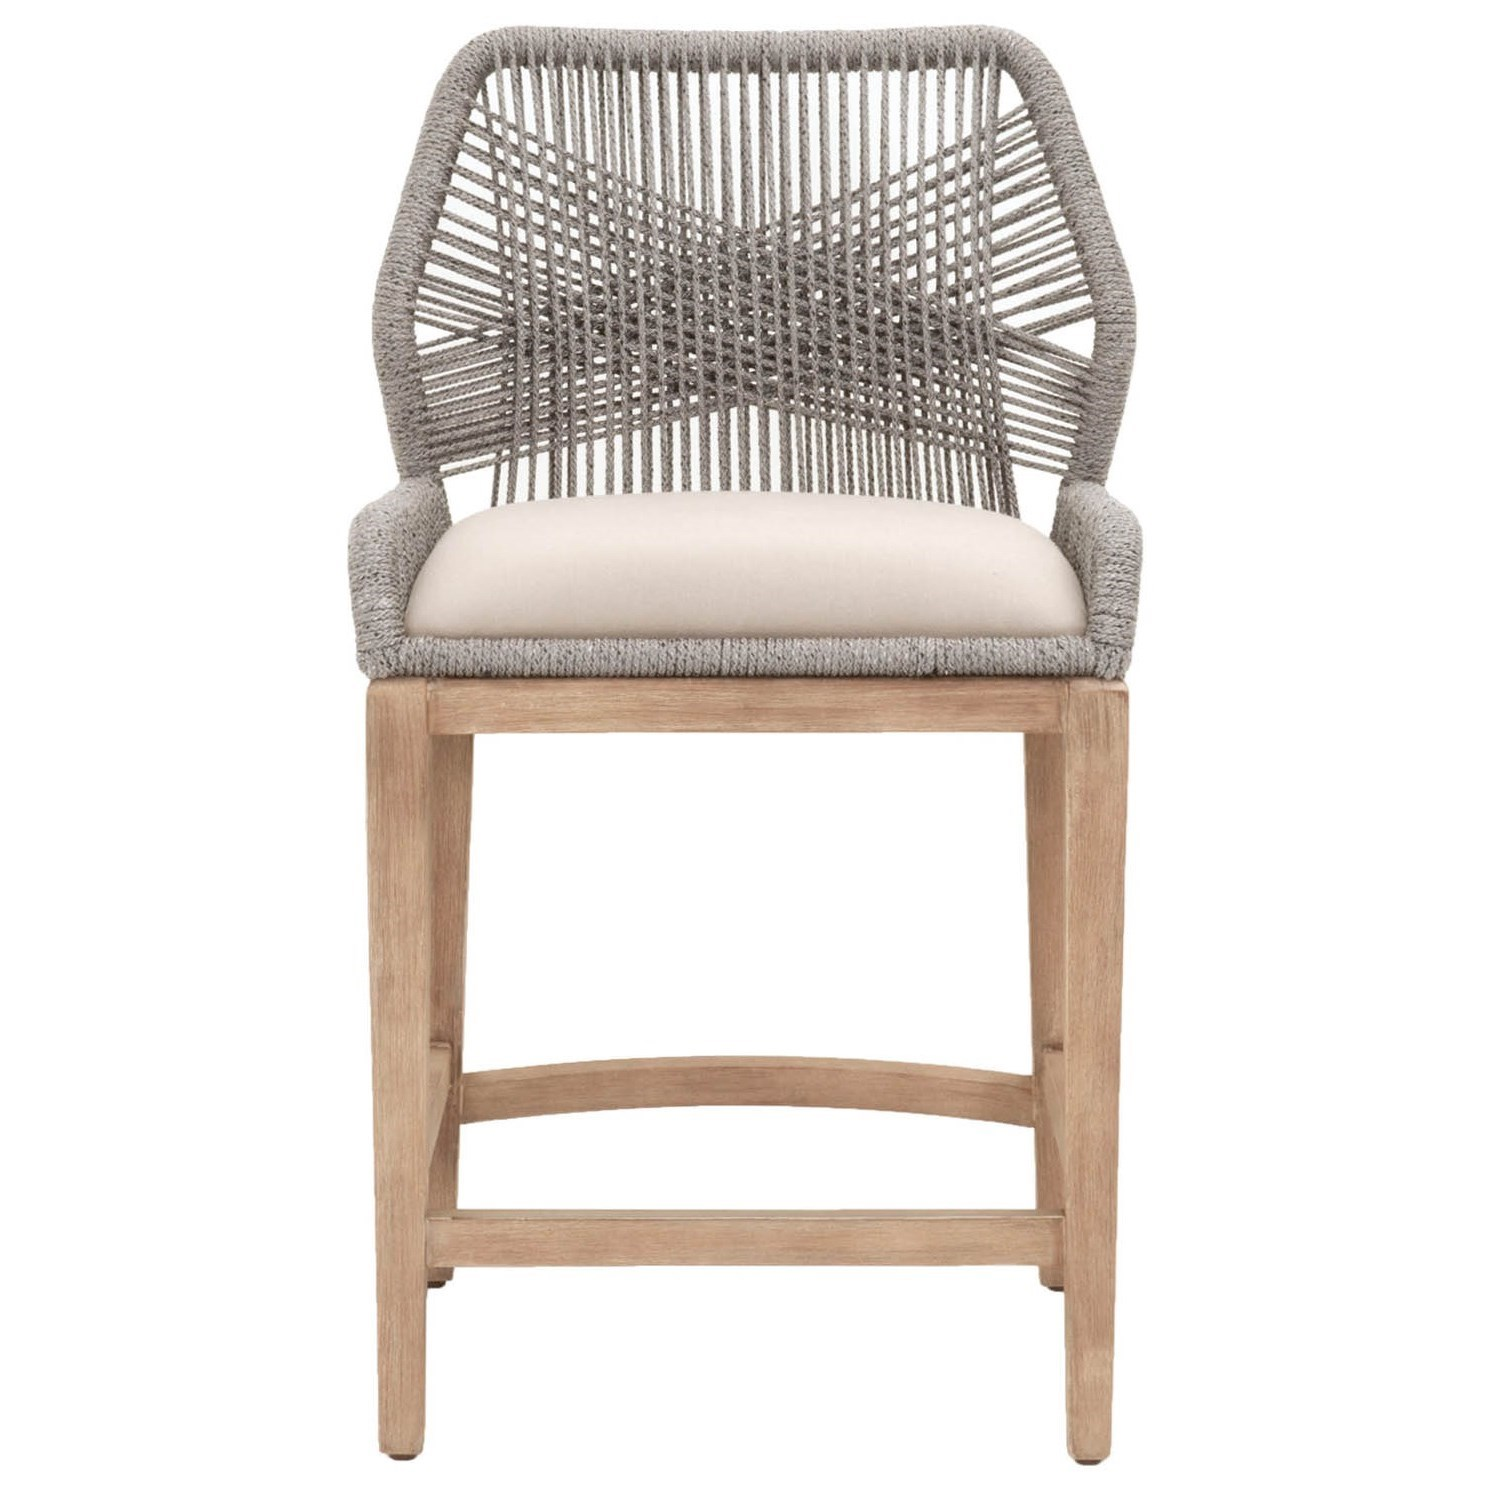 Orient Express Furniture Wicker 6808cs Pla Lgry Loom Rope